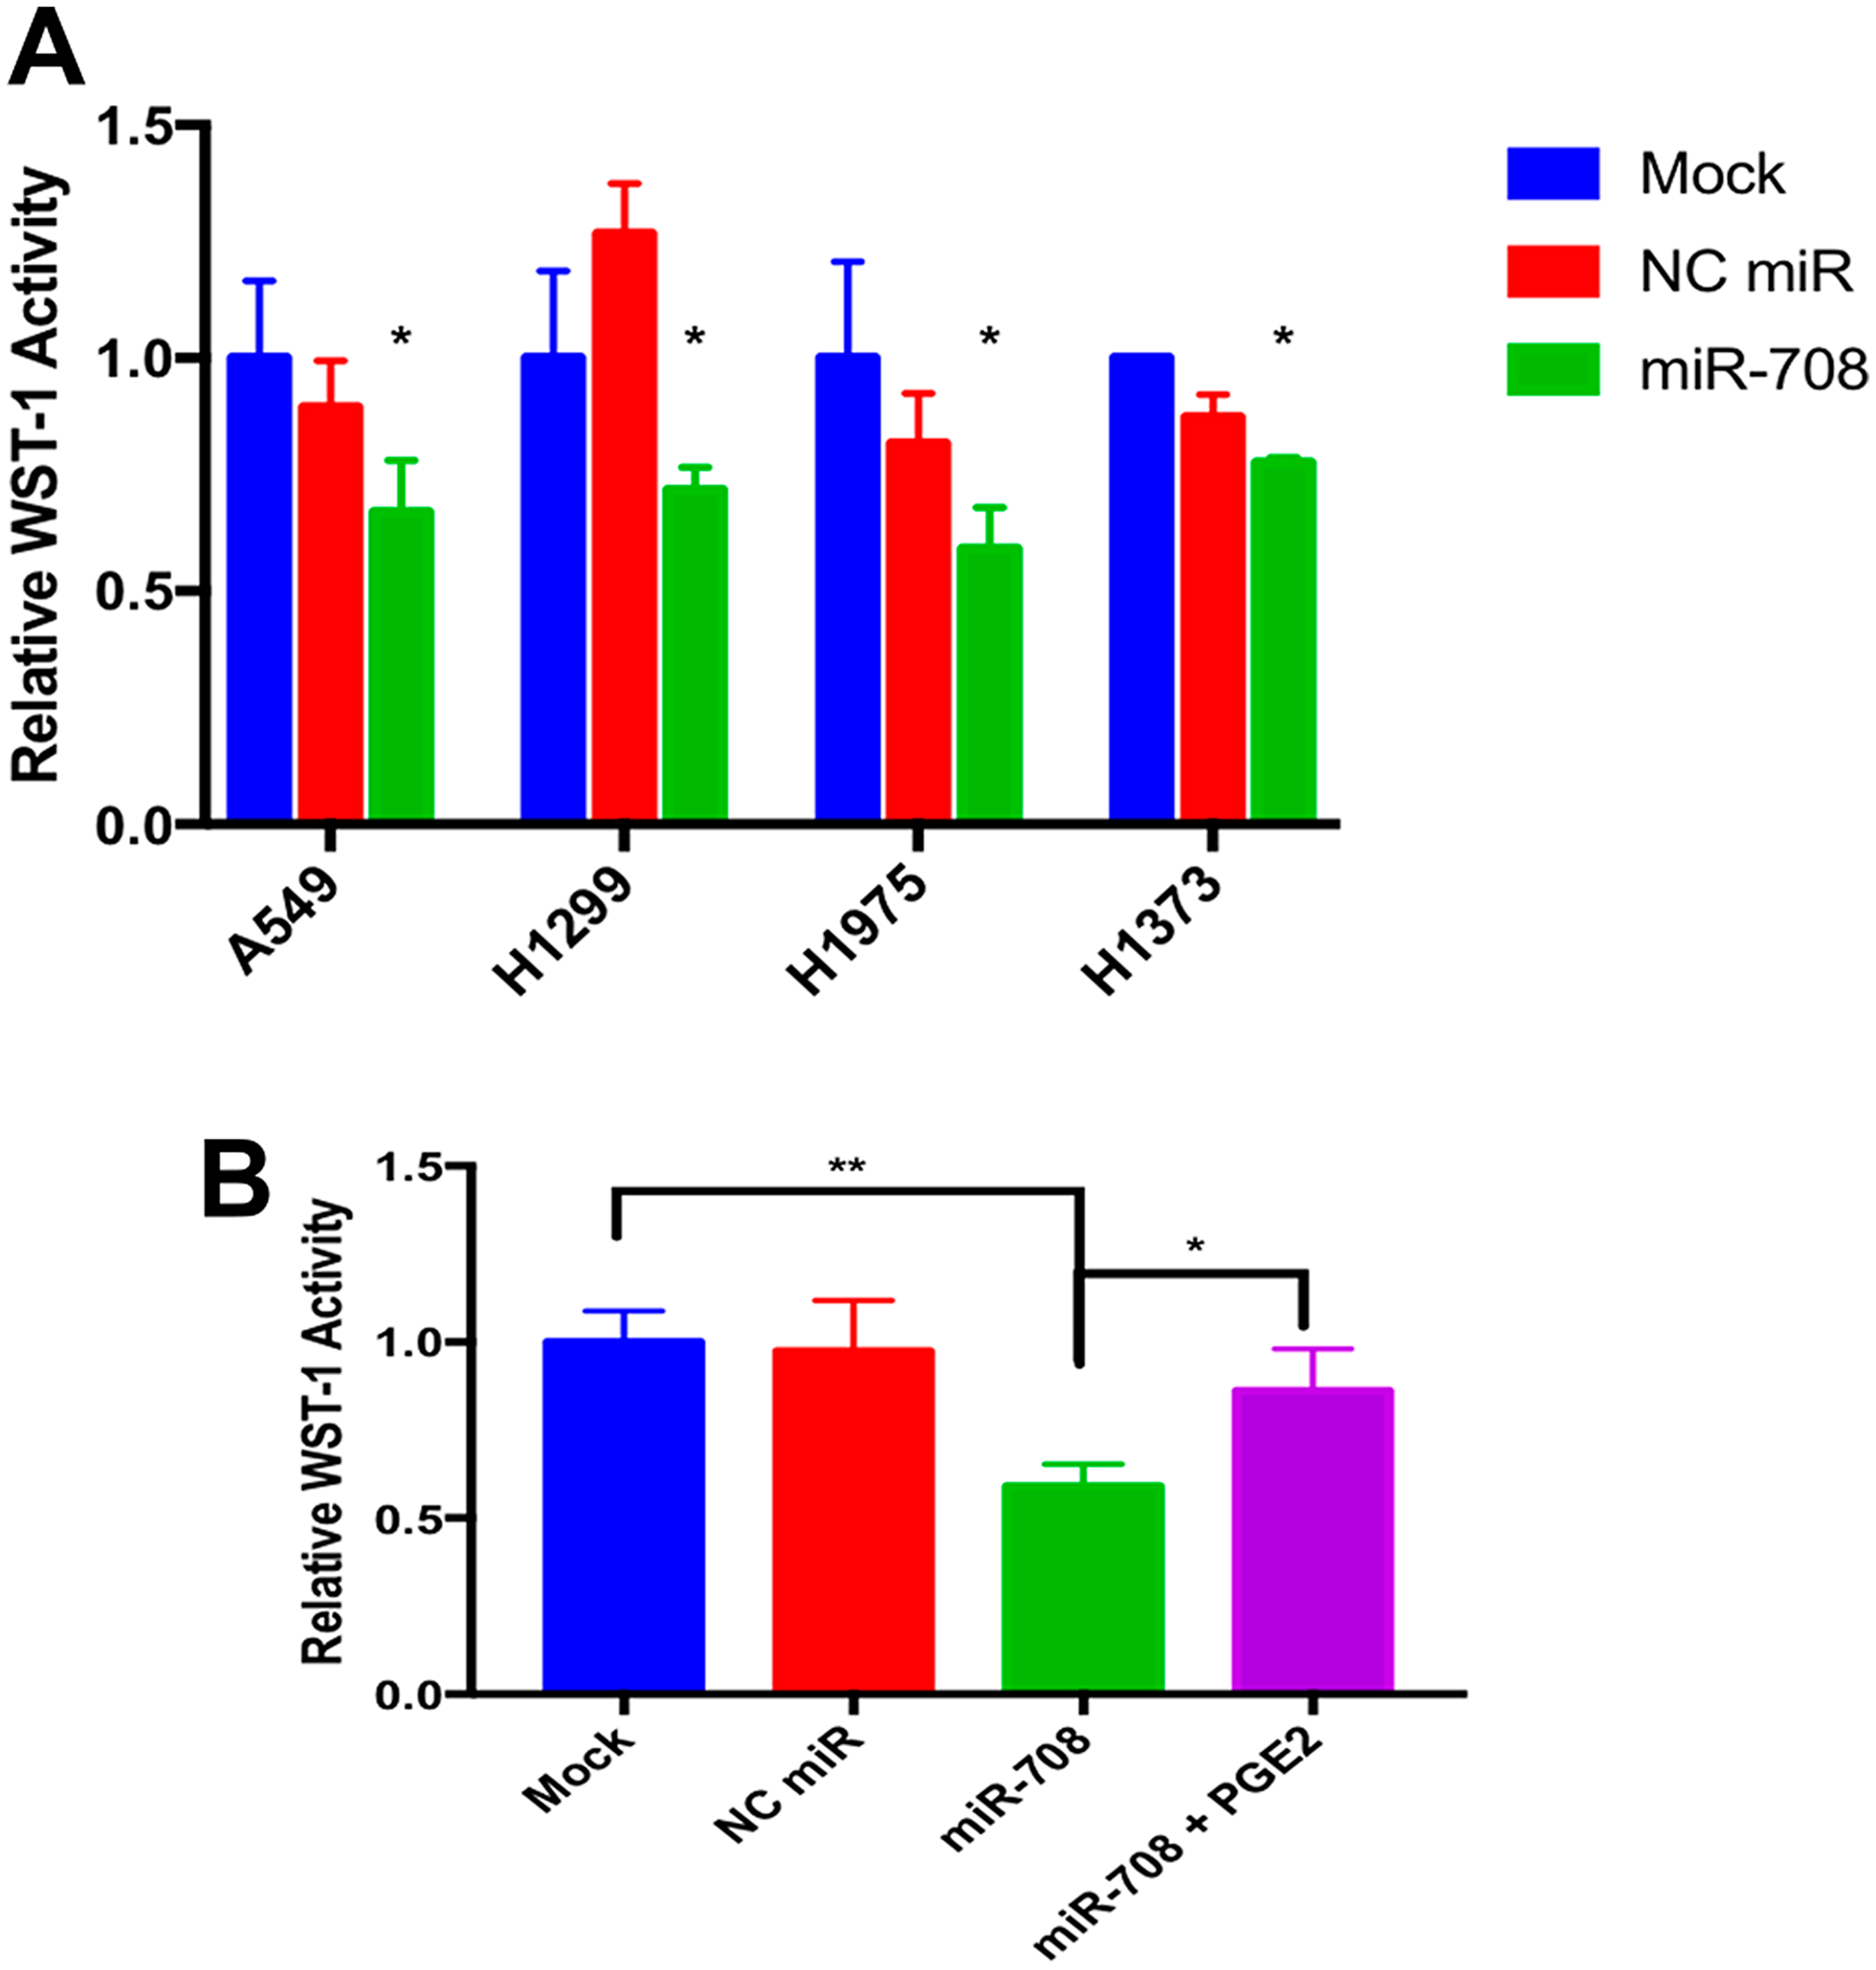 miR-708 suppression of PGE2 production reduces cellular metabolism in lung cancer cells.